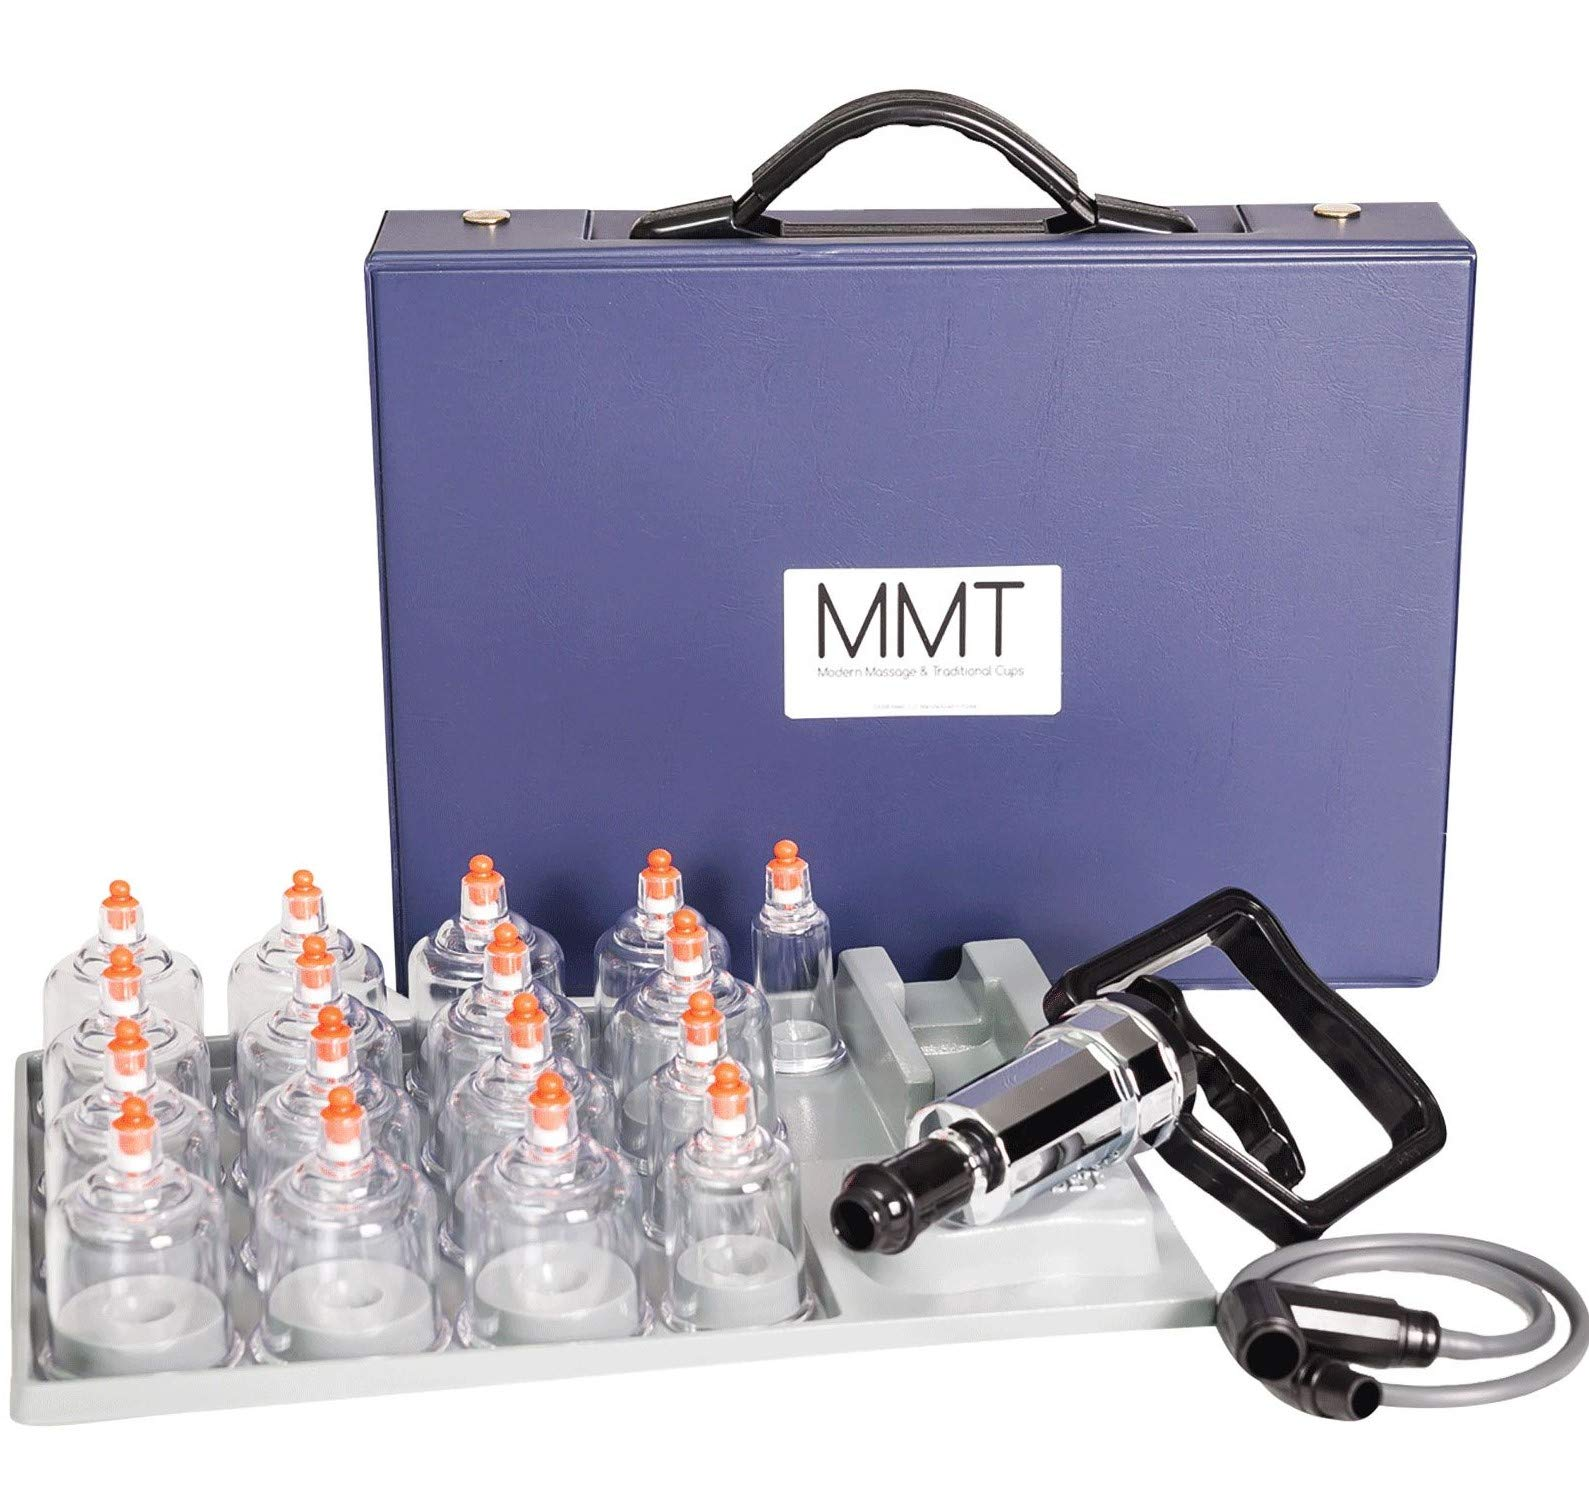 MMT 17 Cup Plastic Professional Cupping Therapy Set w/Pump Gun and Extension Tube by MMT